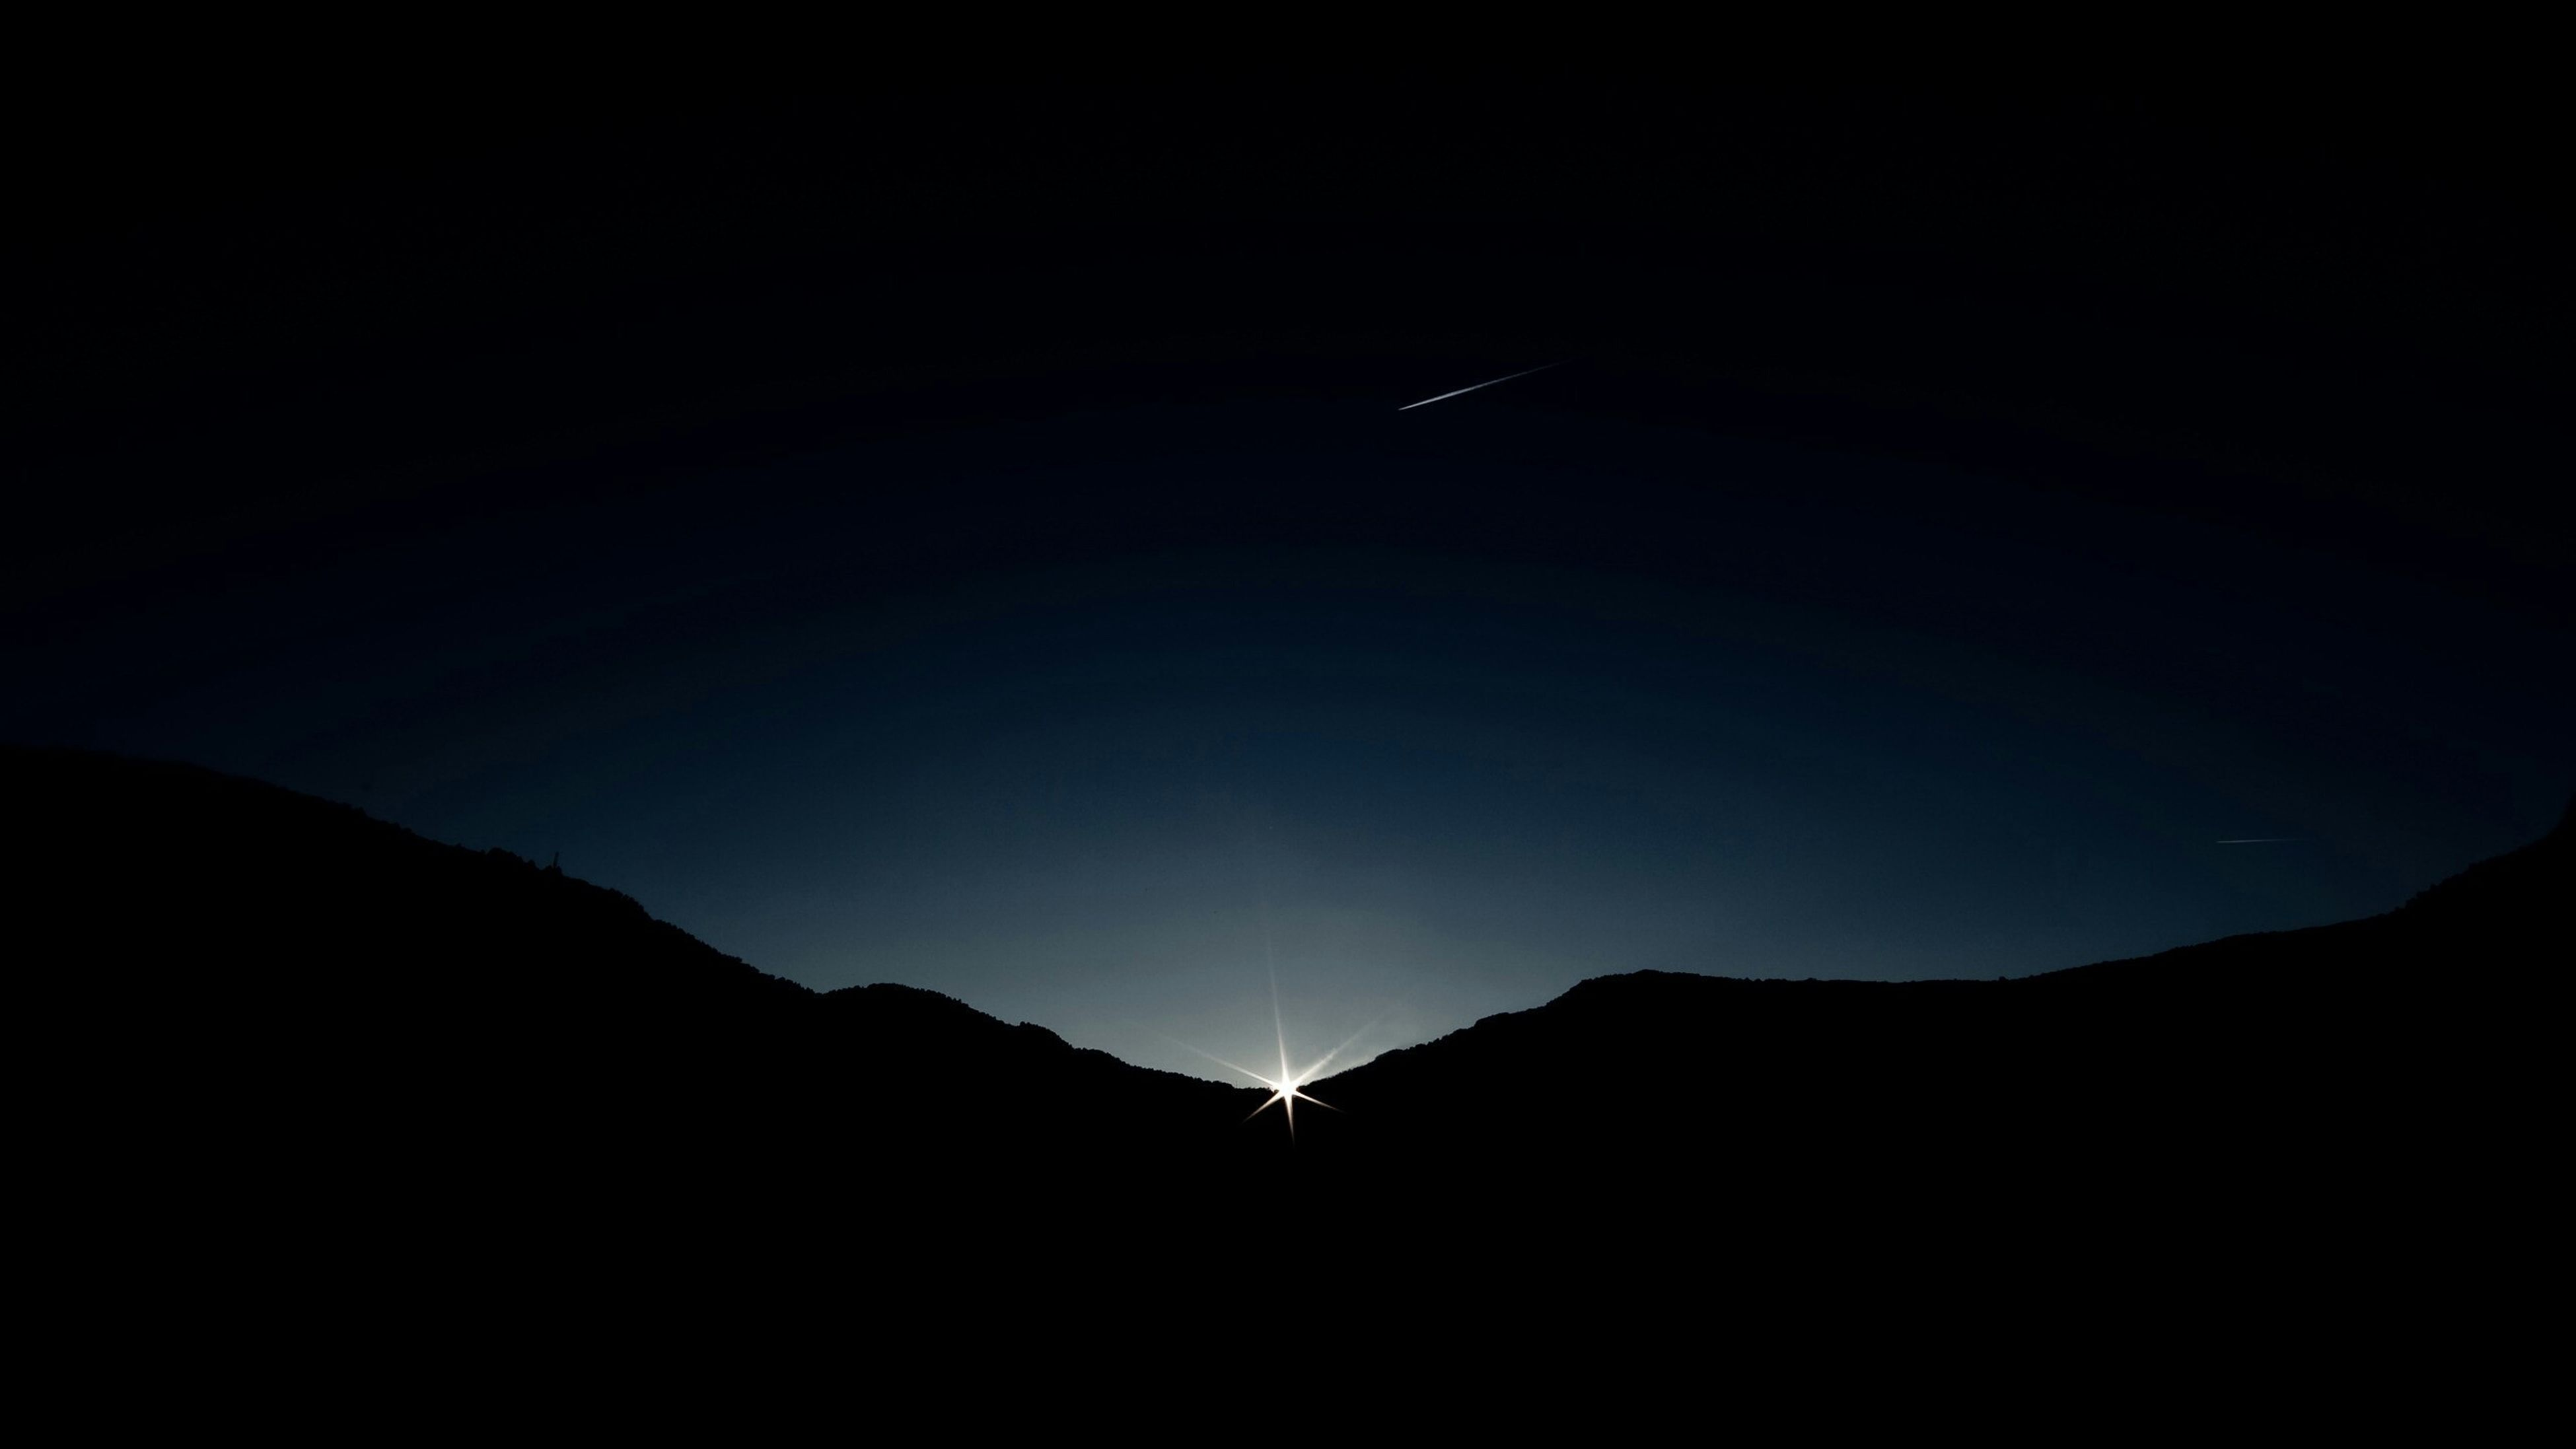 mountain, silhouette, copy space, scenics, mountain range, clear sky, tranquil scene, night, tranquility, beauty in nature, landscape, nature, moon, idyllic, dark, dusk, illuminated, outdoors, sky, low angle view